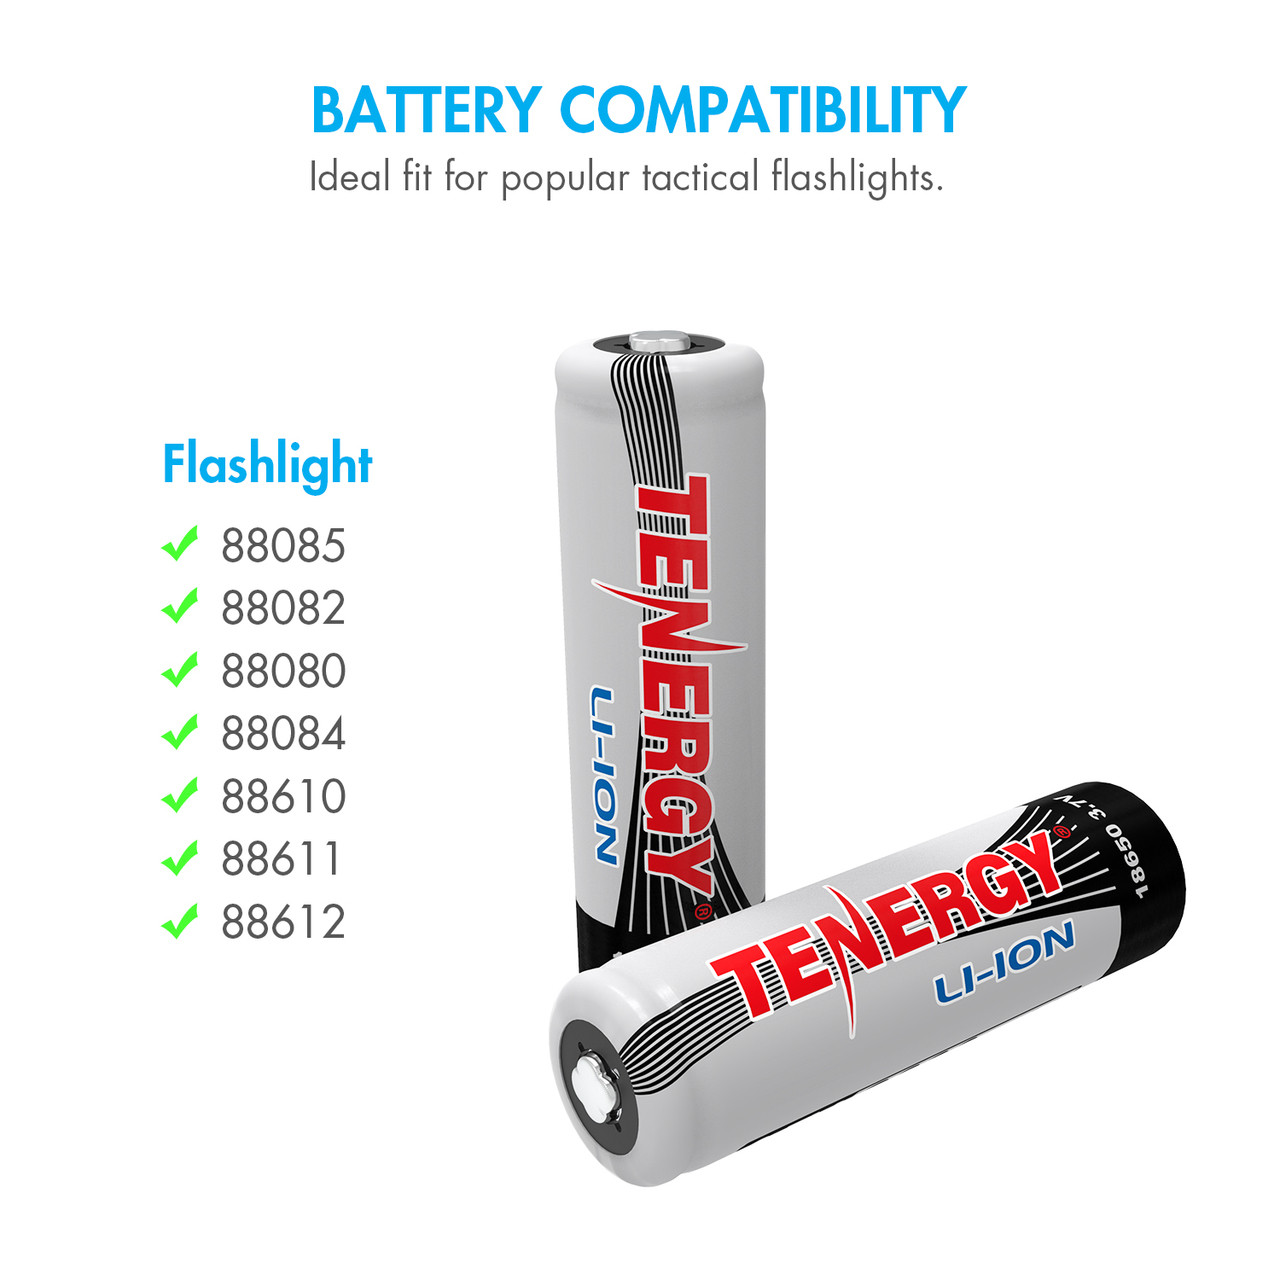 Kit: Tenergy 2CH 18650/14500 Li-ion Battery Charger + 2 PCS Li-ion 18650 3.7V 2600mAh Batteries (Button Top) w/ PCB